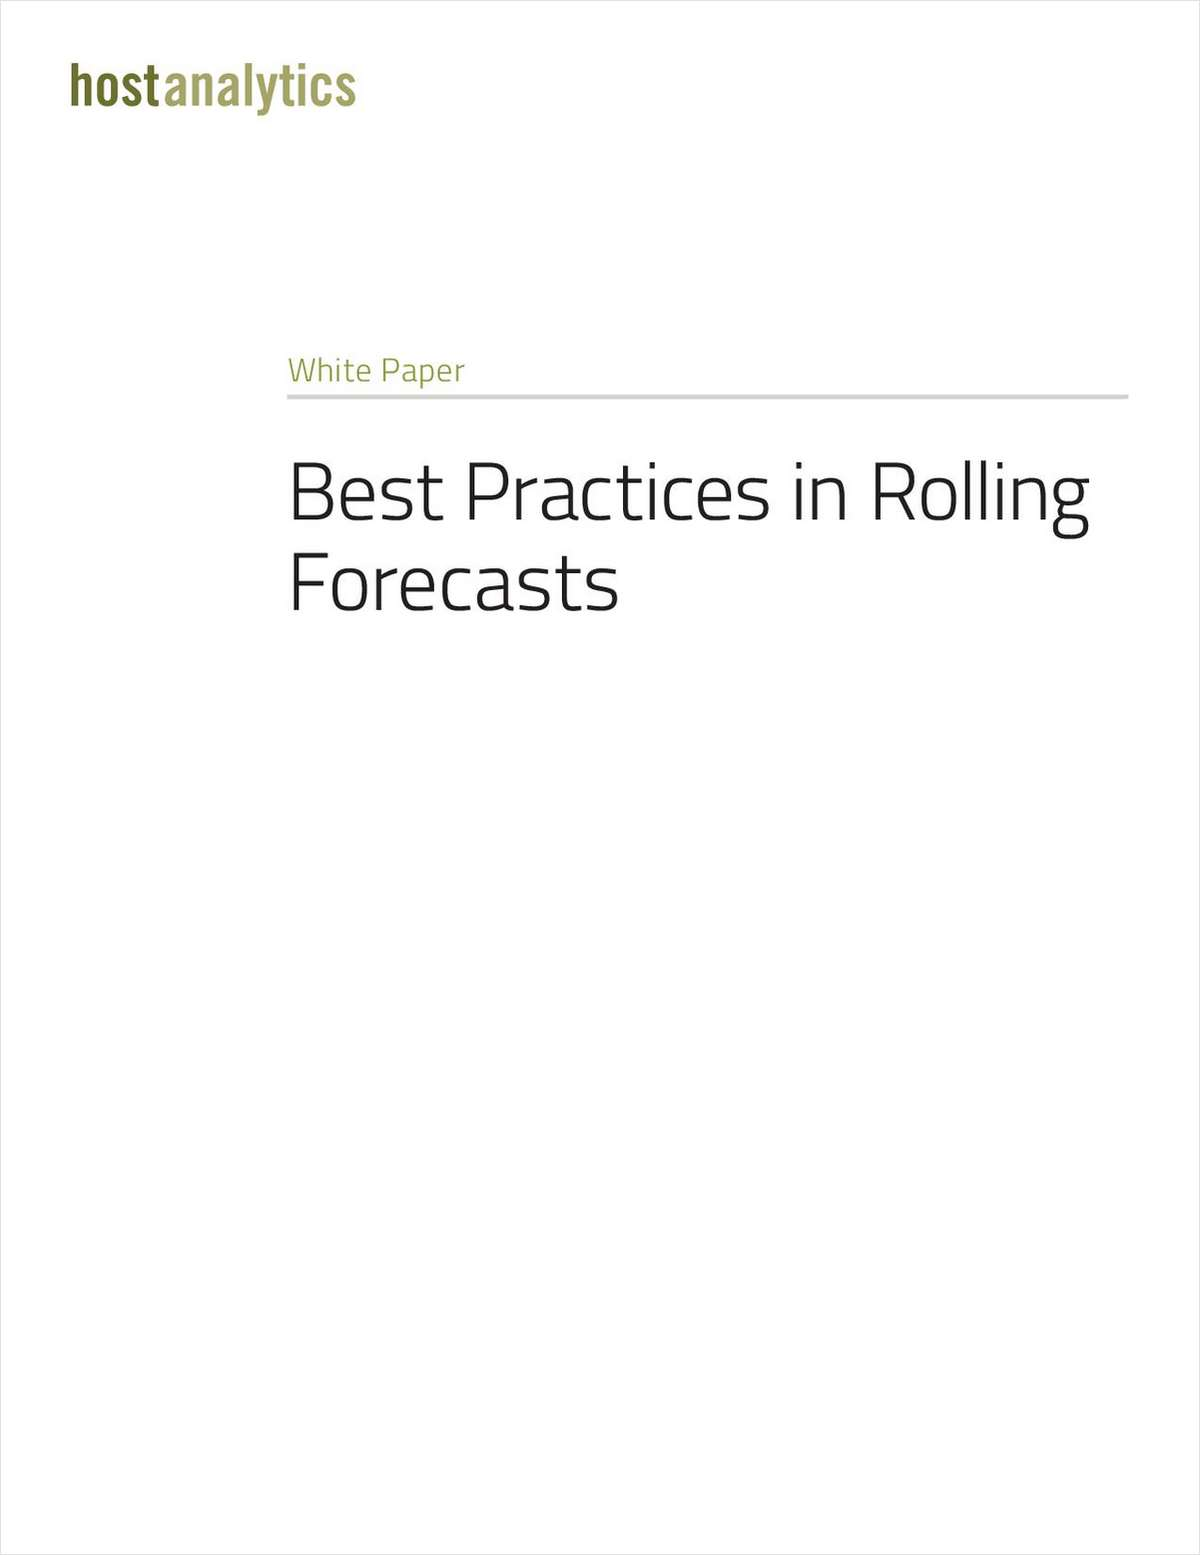 Best Practices in Rolling Forecasts